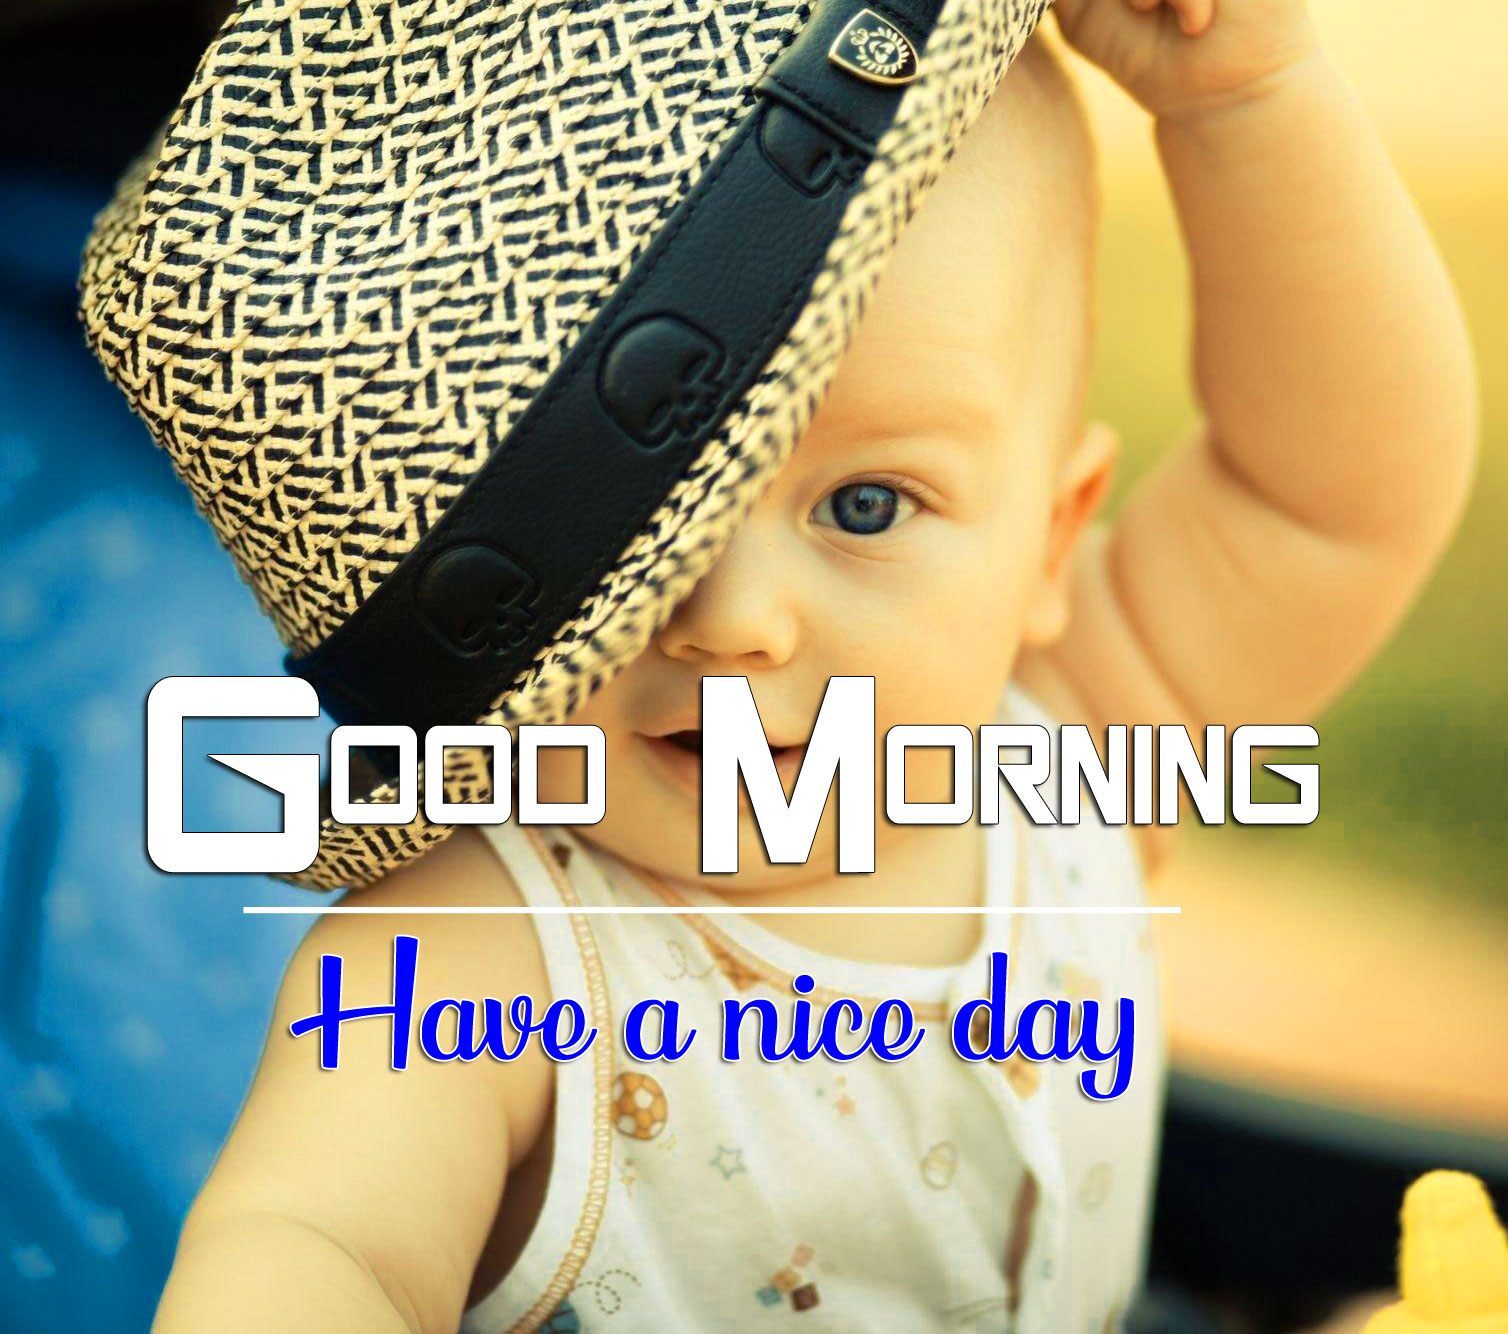 Good Morning Wishes Images Wallpaper With Cute Baby